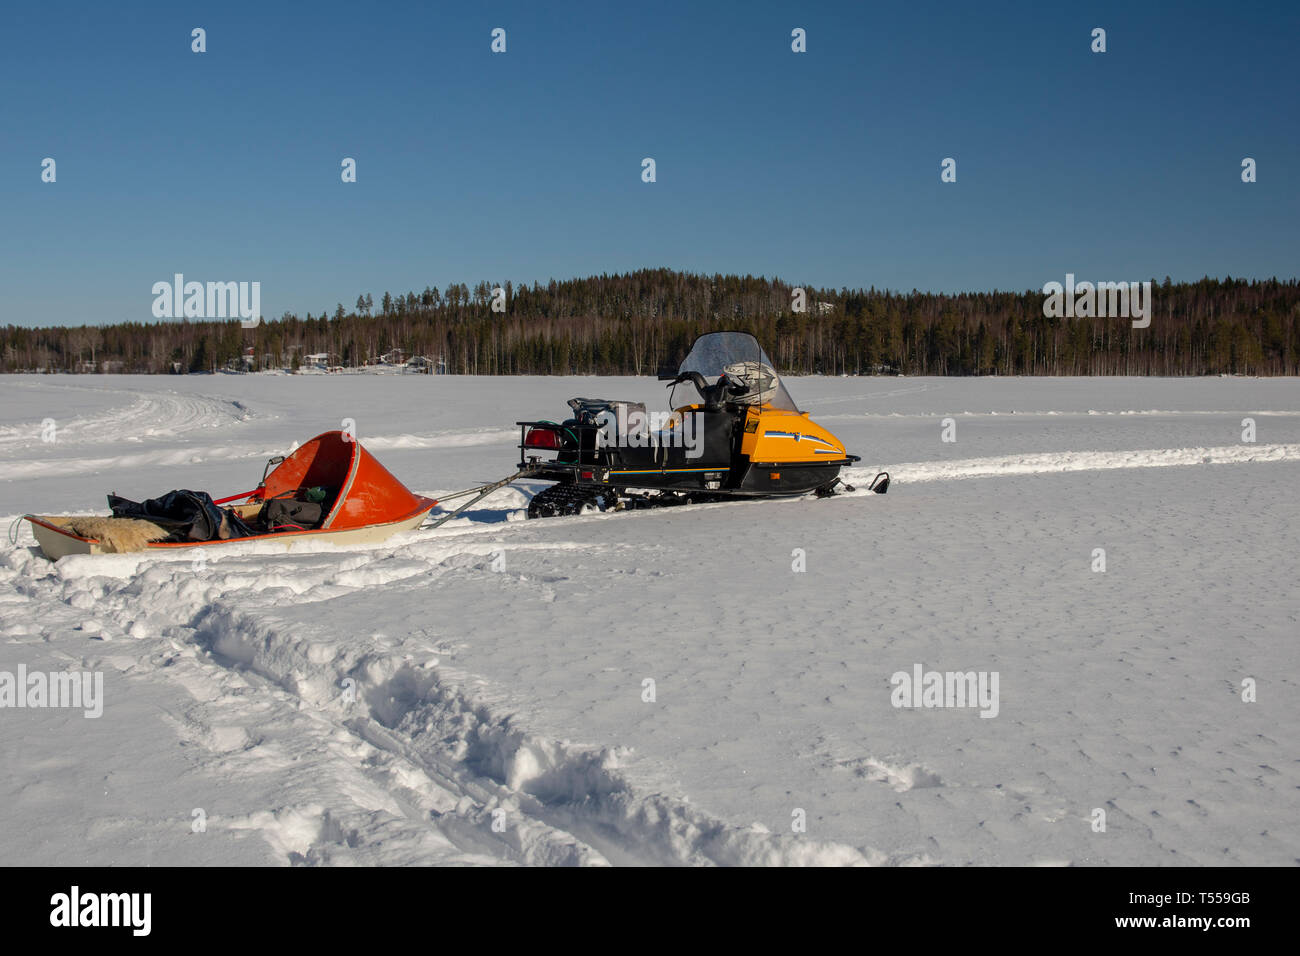 Snowmobile with a sled packed with fishing gear standing on the ice on a lake with forest and mountain in background against a blue sky, picture from  - Stock Image